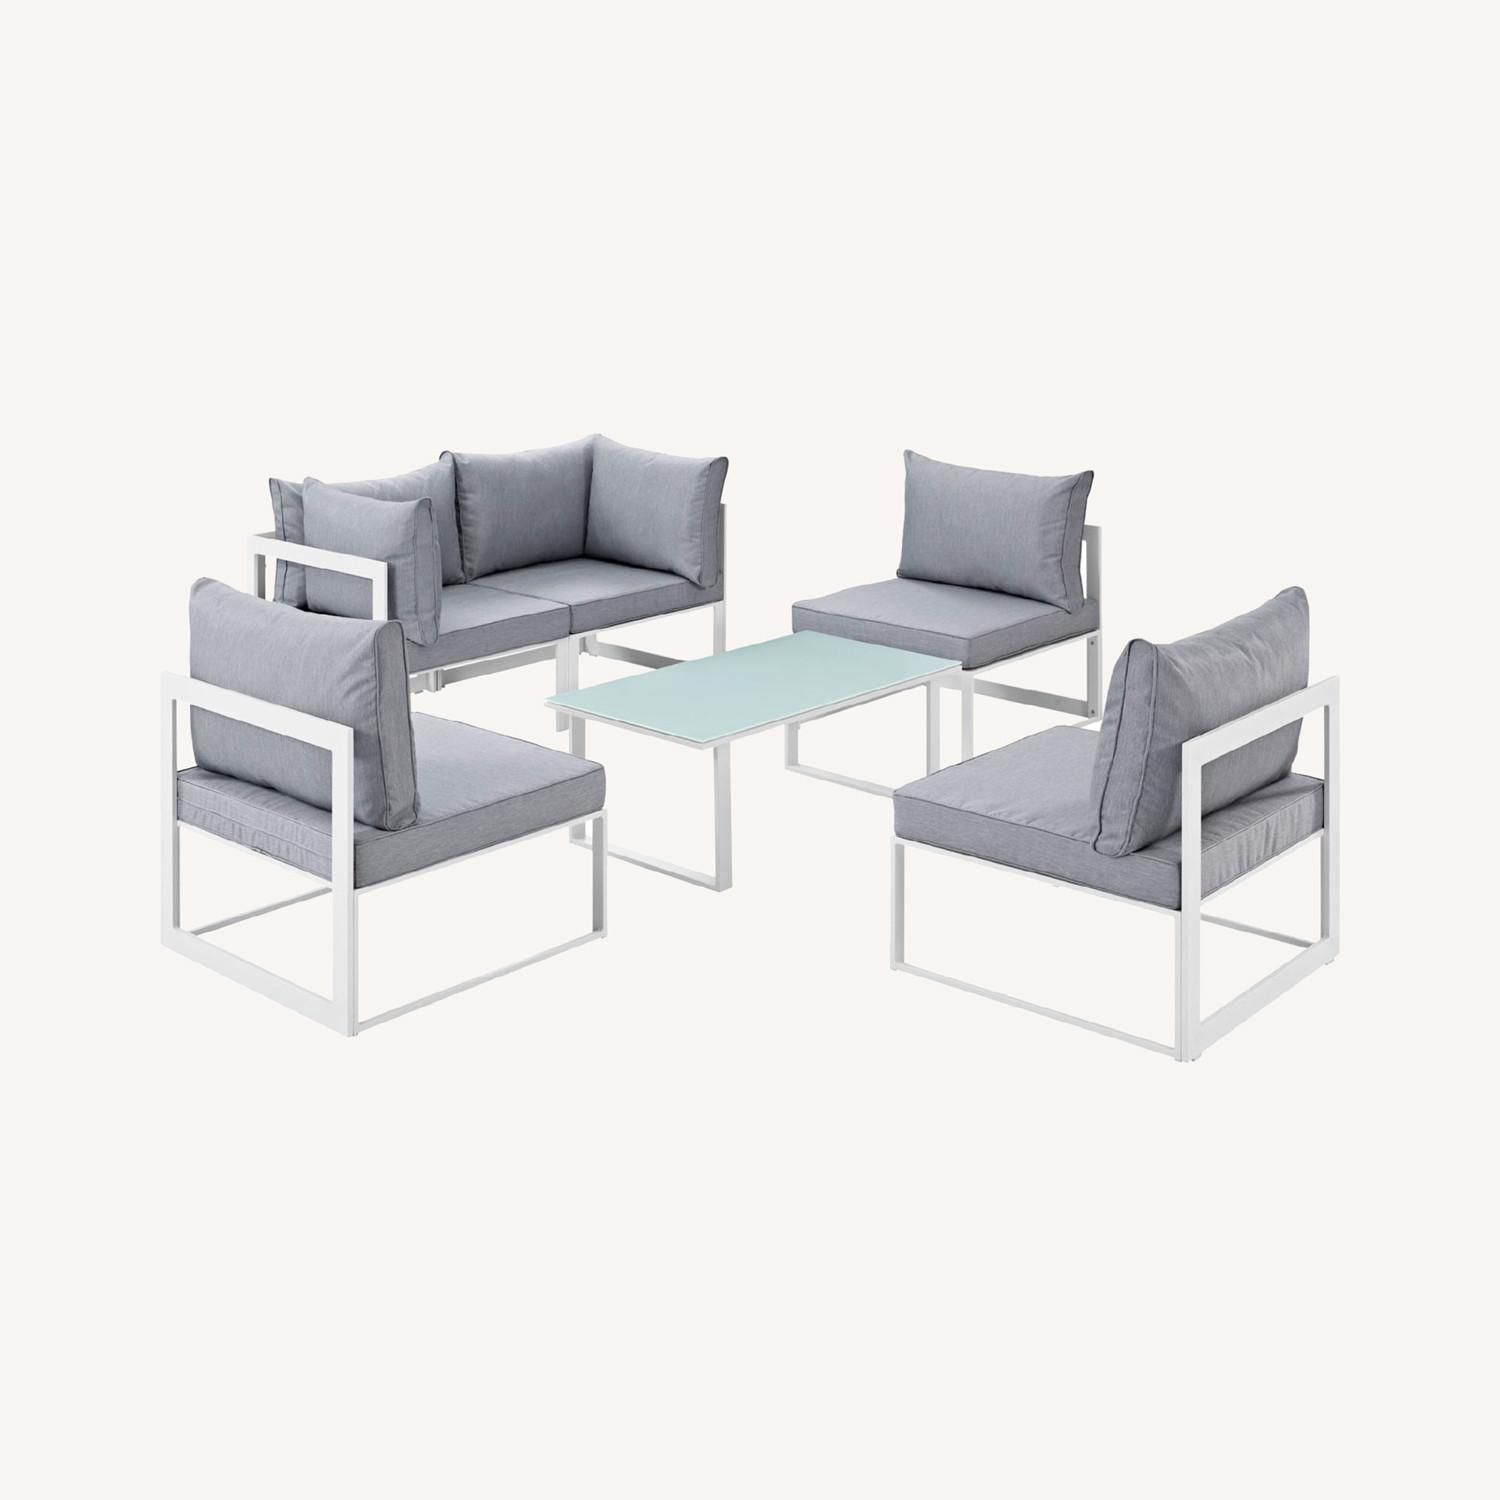 6-Piece Outdoor Sectional In Gray Cushion Fabric - image-7